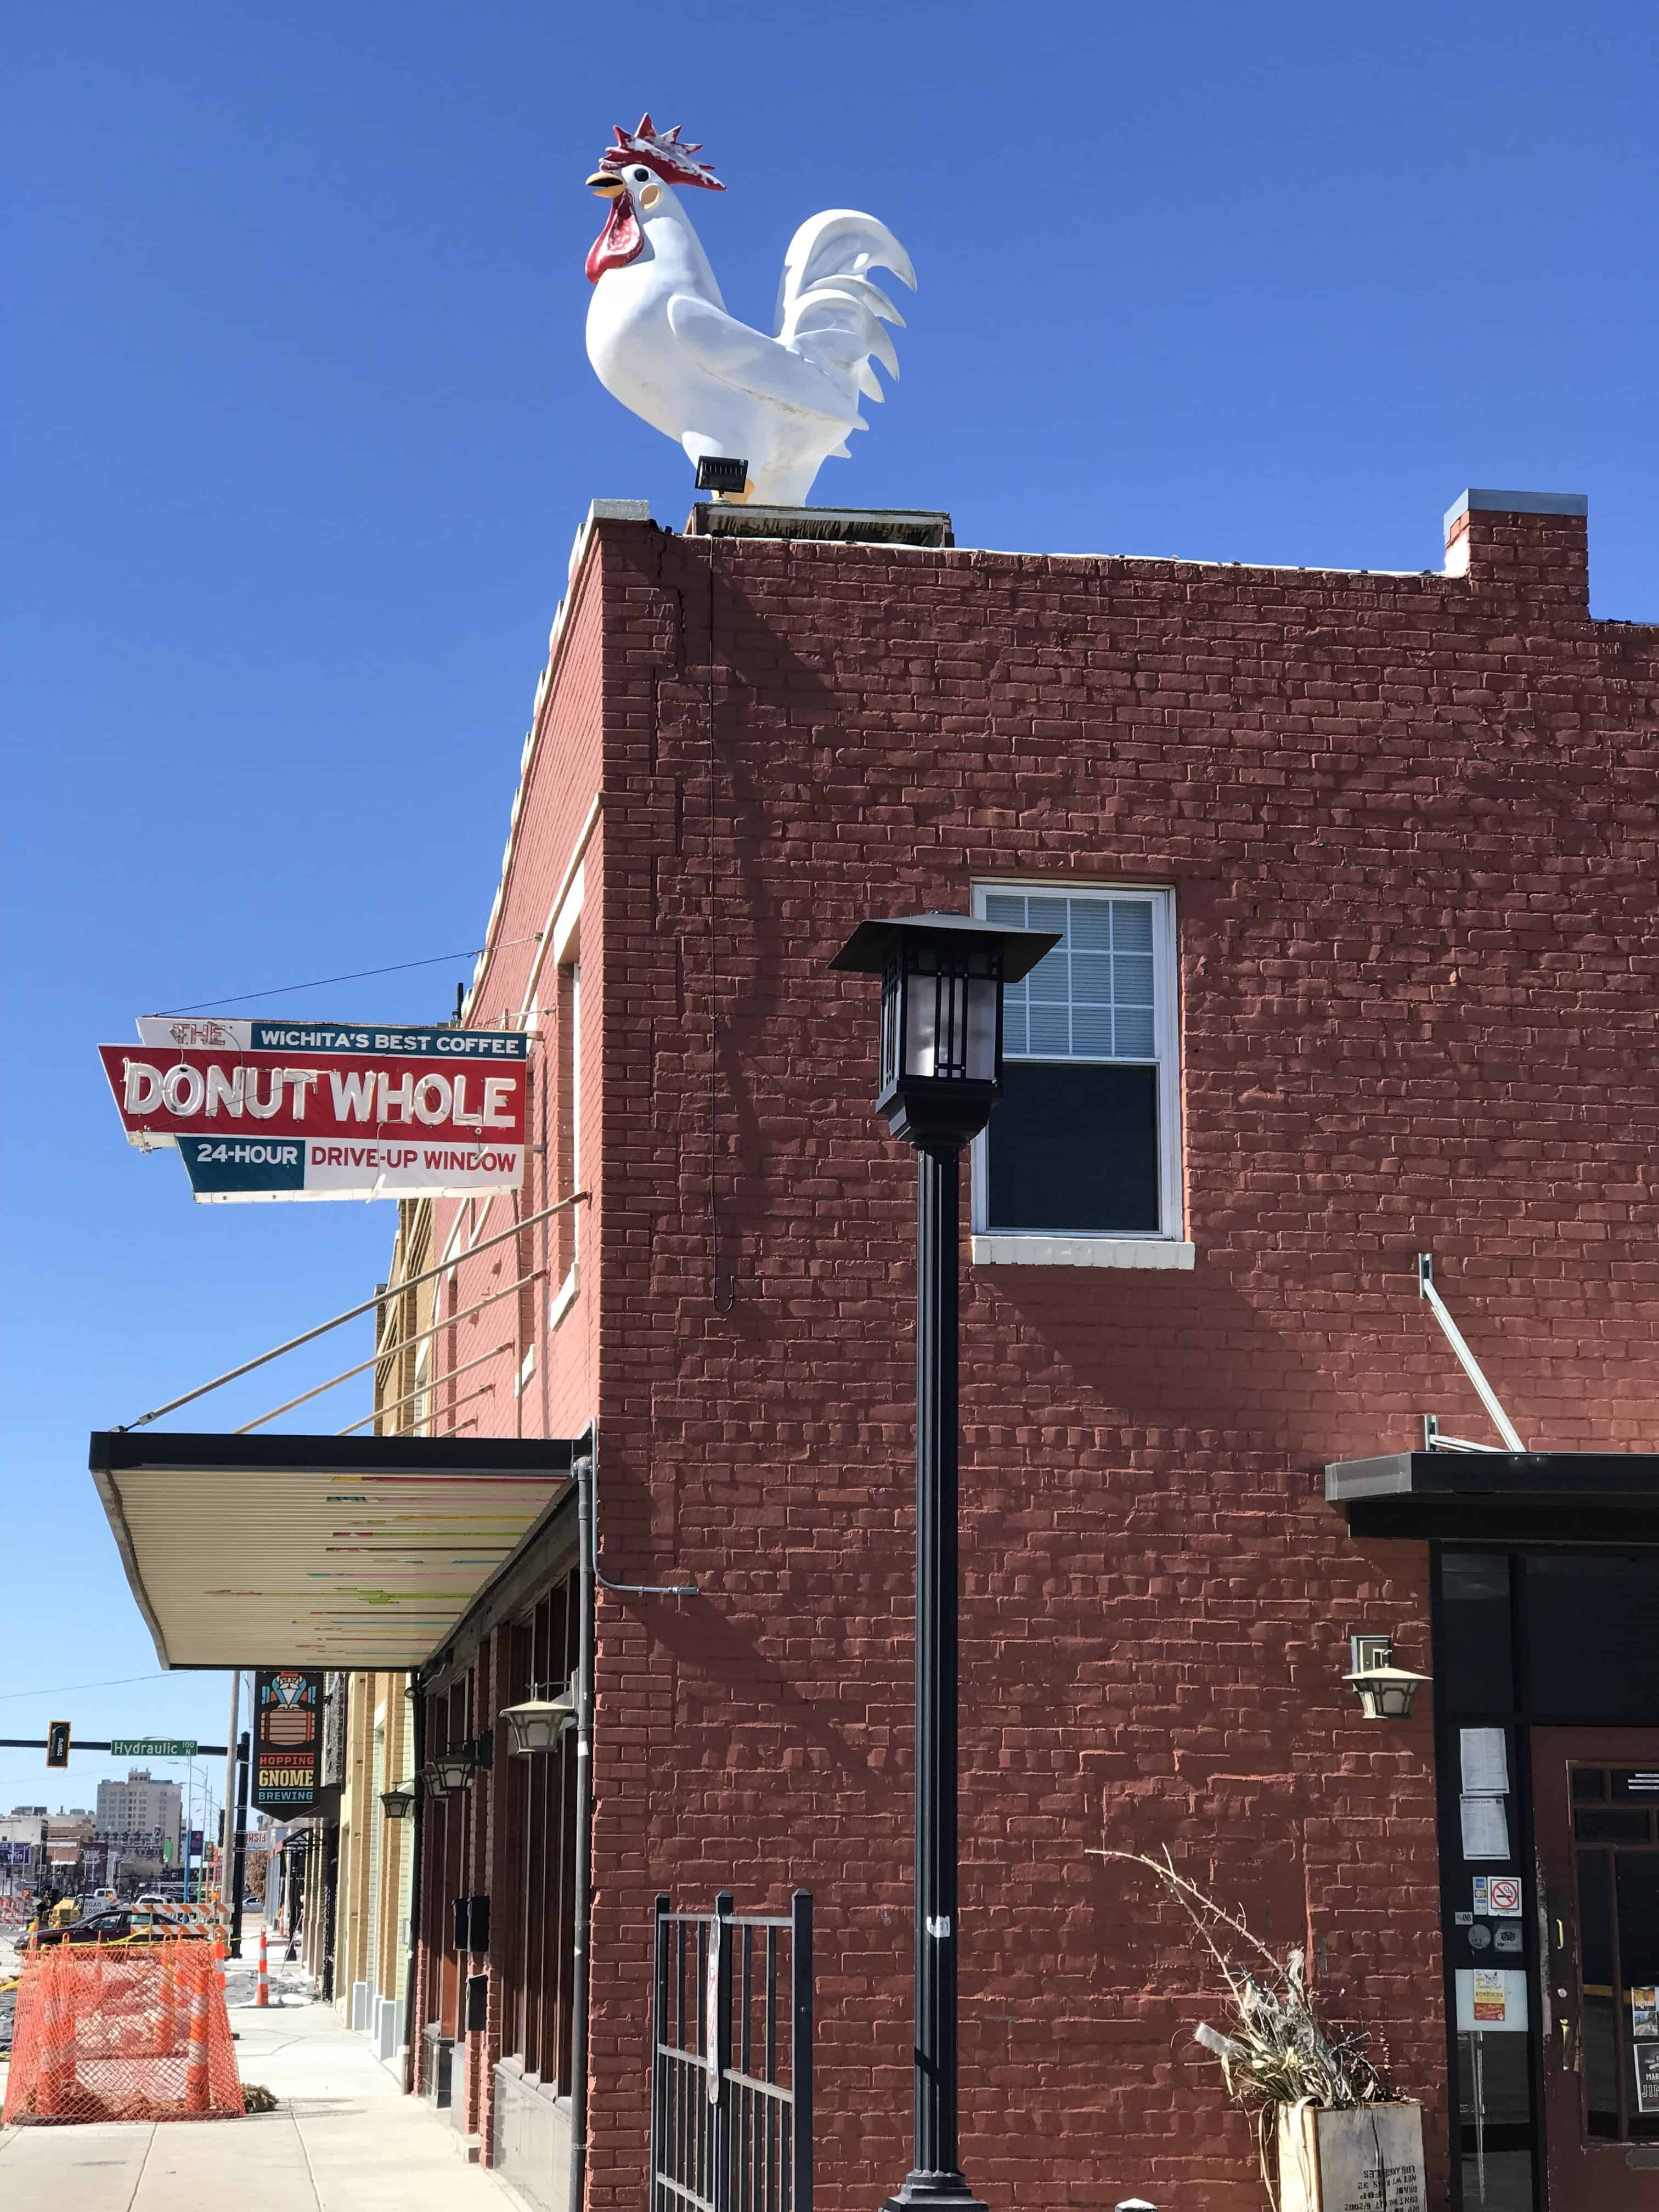 How to spend a day in wichita. A review of The Donut Whole in Wichita, Kansas